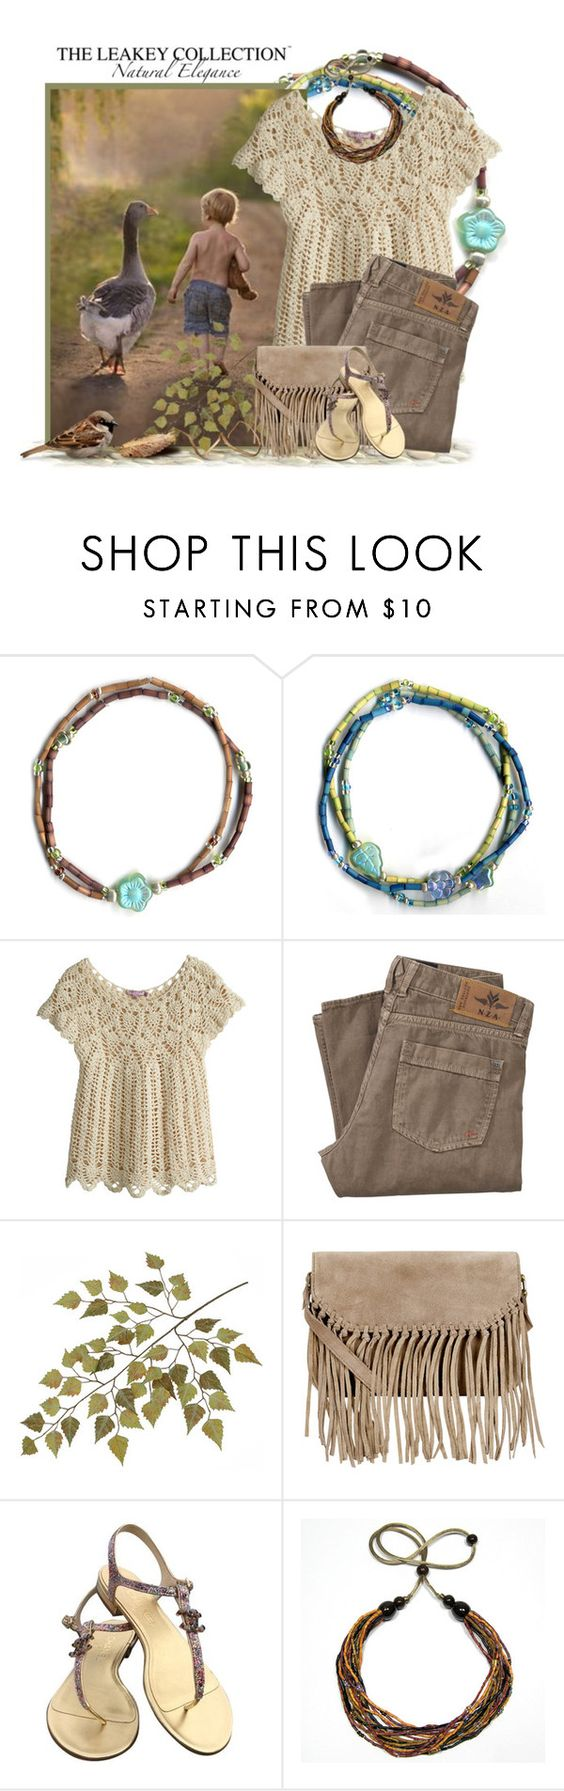 """Just Going for a Walk"" by theleakeycollection ❤ liked on Polyvore featuring Sprout, Calypso St. Barth, Accessorize and Chanel"